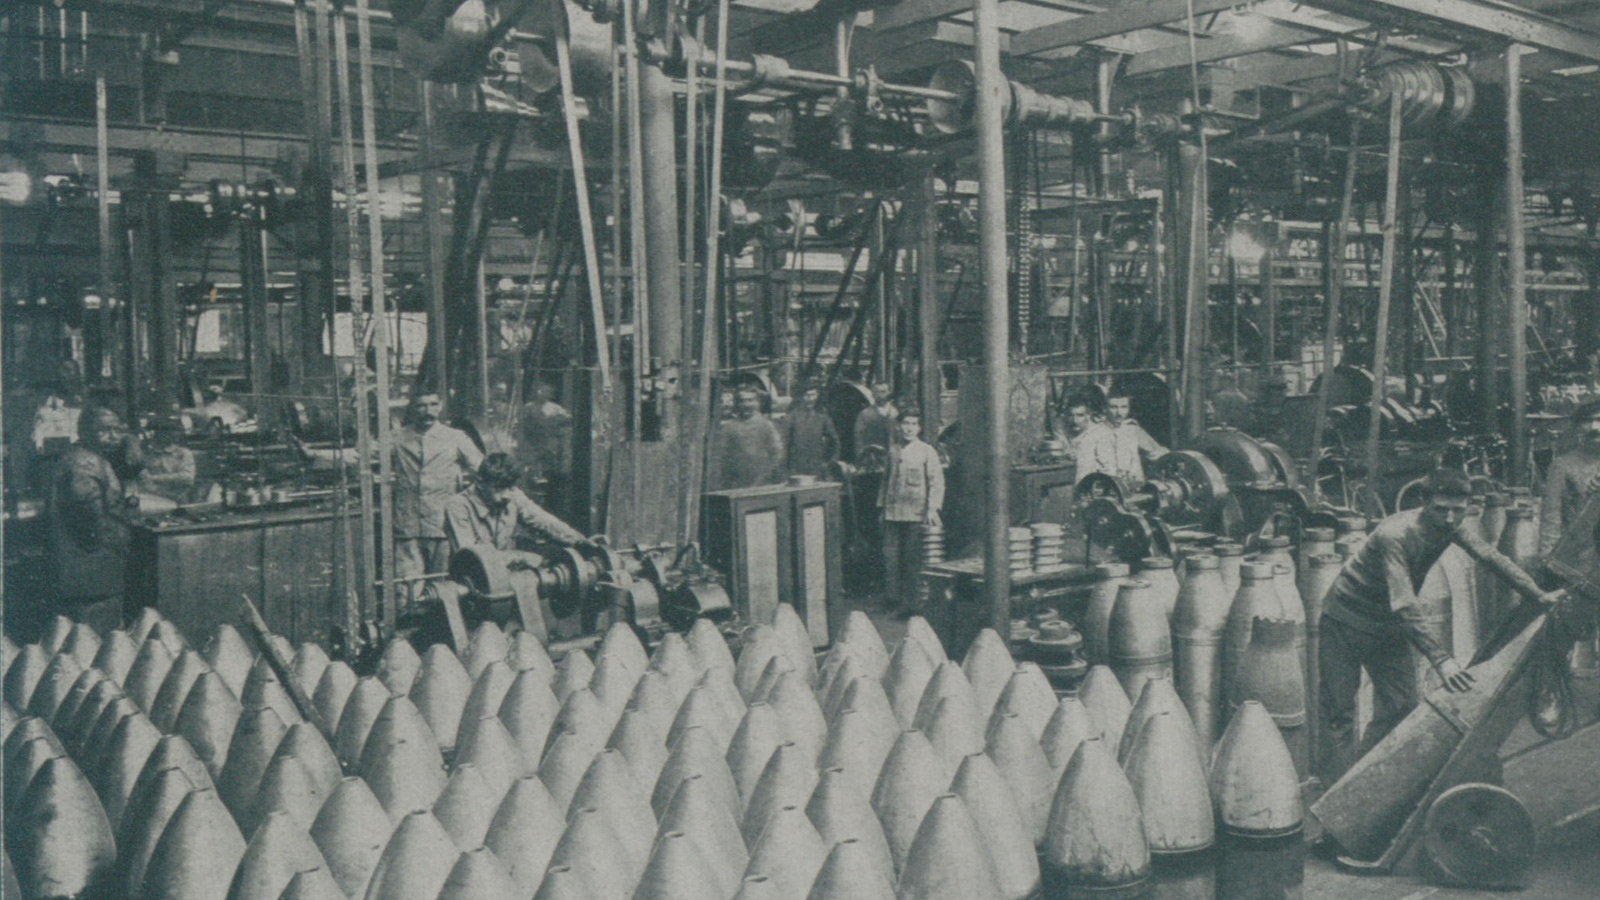 A photograph a munitions plant. Shell are lining the aisles, workers can be seen behind them standing at various machines.